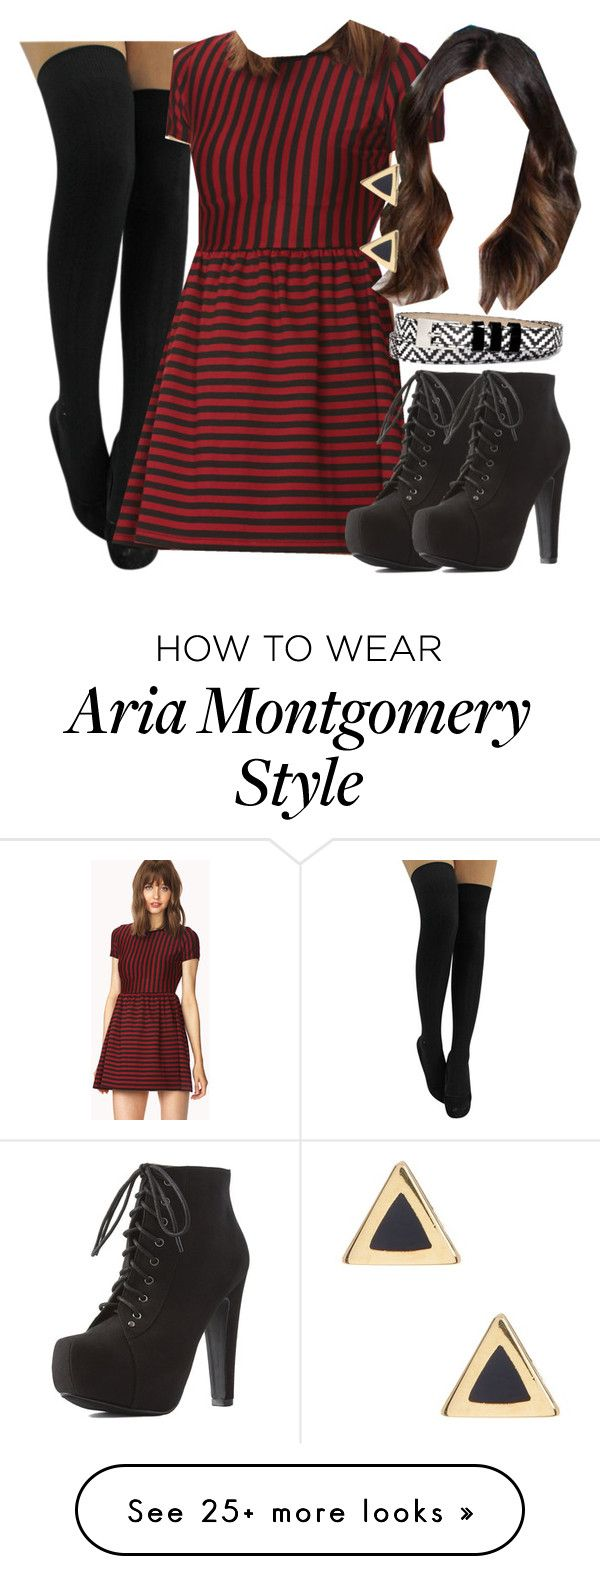 """""""Aria Montgomery inspired outfit with black over-the-knee socks"""" by liarsstyle on Polyvore featuring Forever 21, Charlotte Russe, Liz Claiborne, Ariella Collection, party, Semi and mid"""